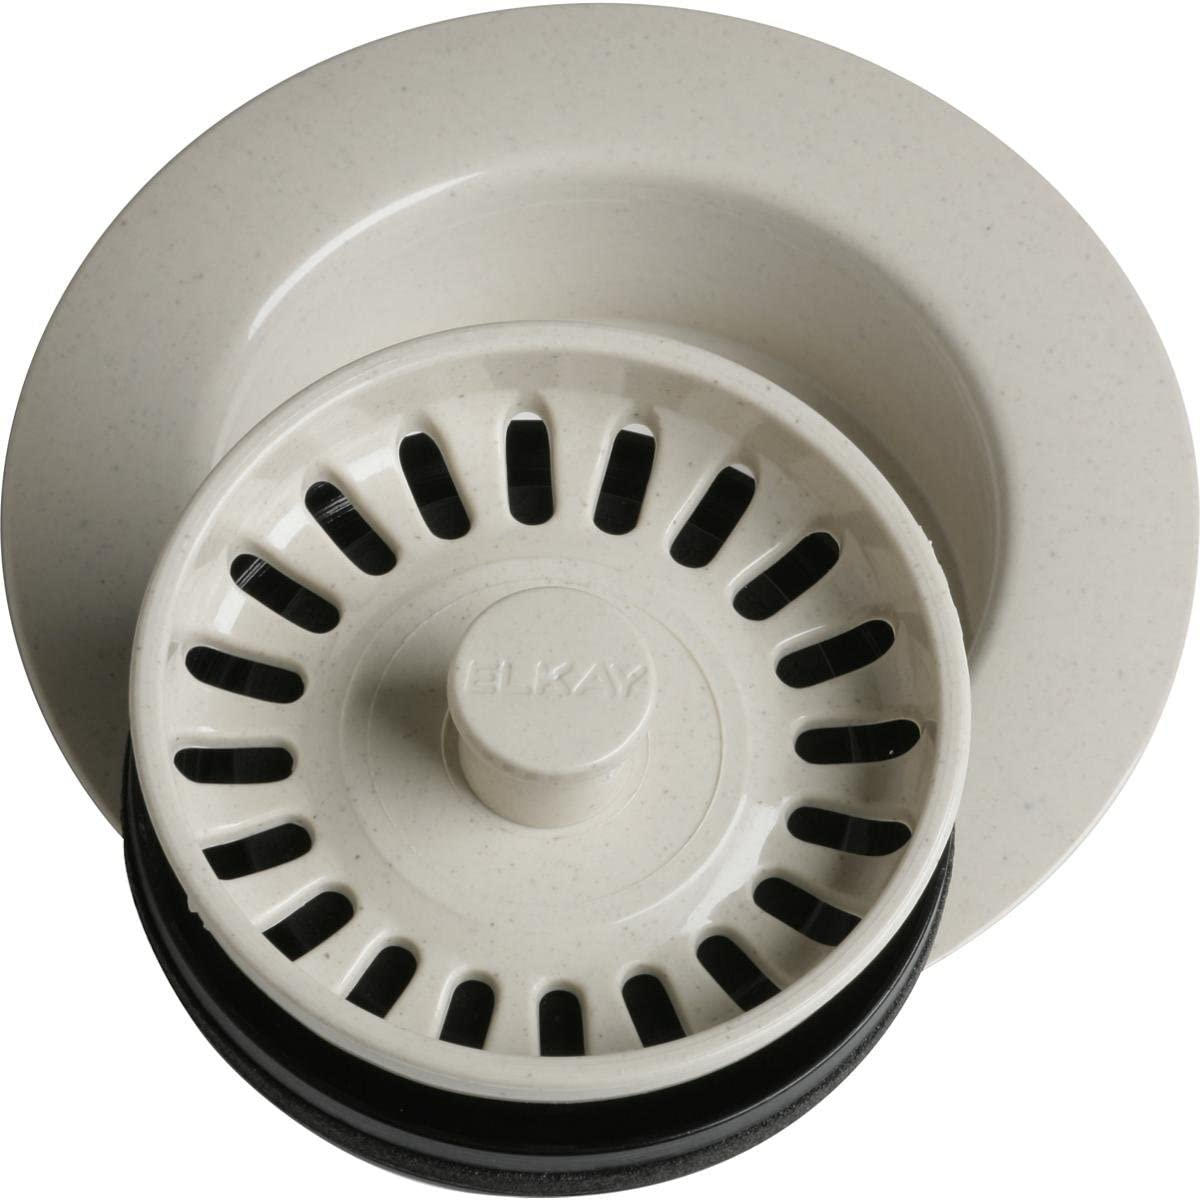 Elkay LKD35BQ Polymer Disposer Flange Fitting with Removable Basket Strainer and Rubber Stopper, Bisque